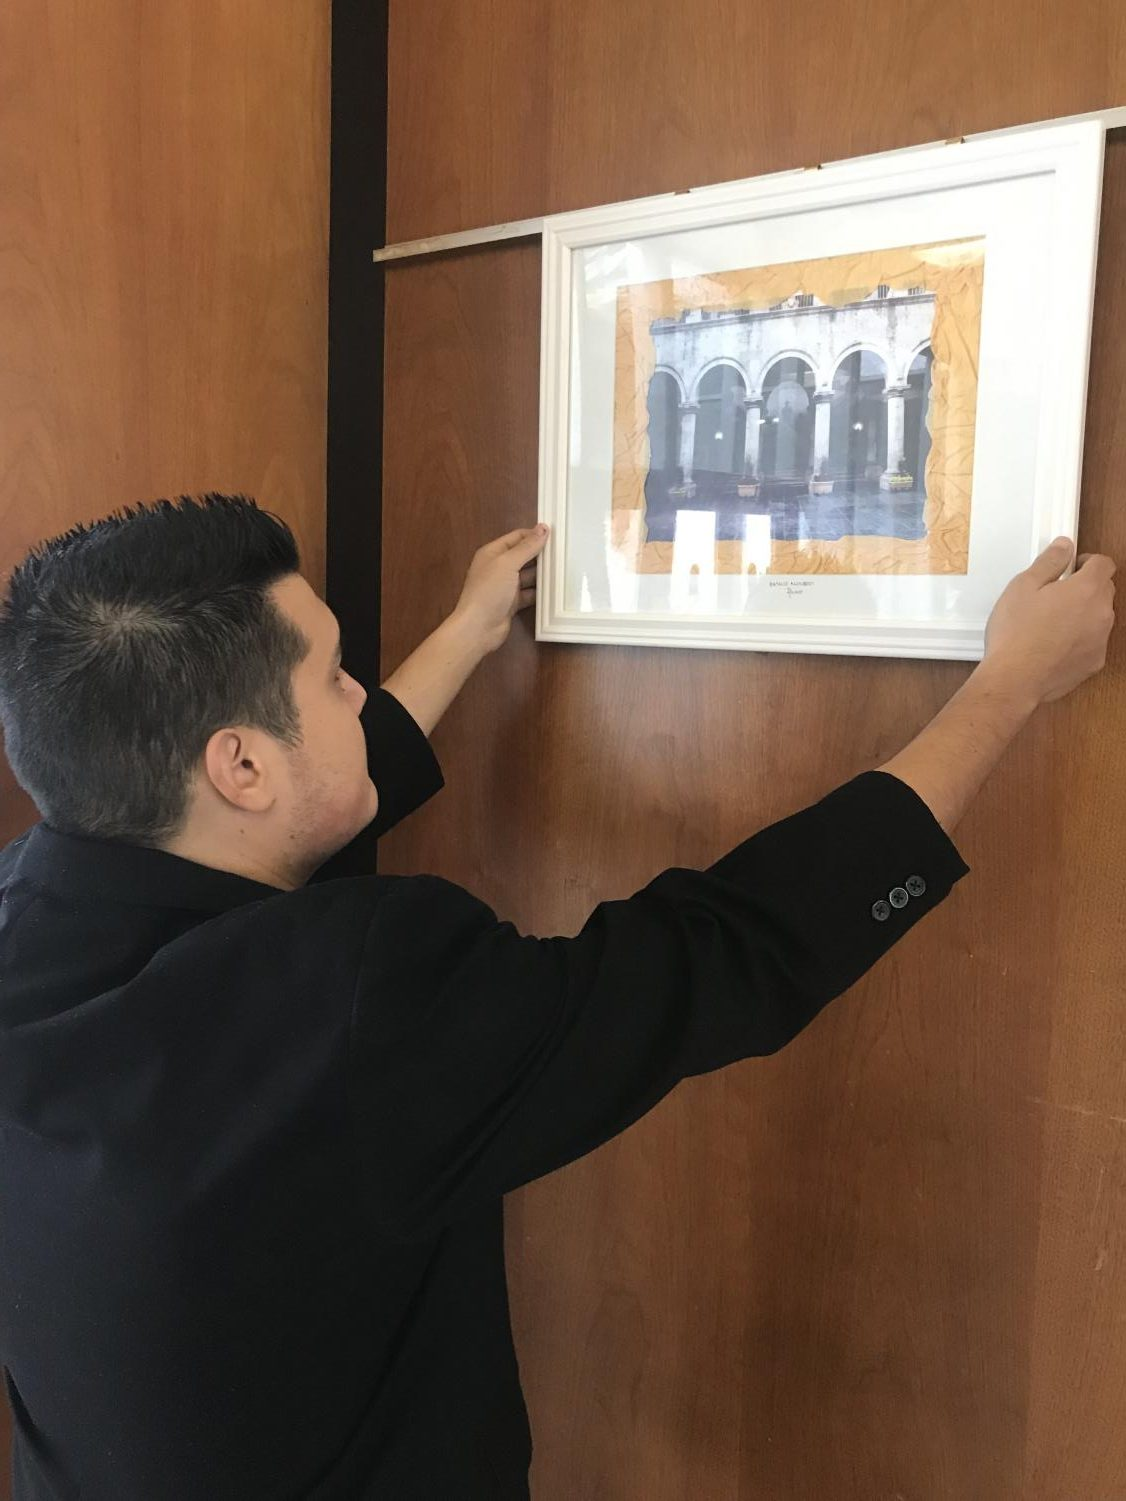 Basilio Alonzo hangs up his artwork at Alhambra city hall. (Daniel  Lindley/Community News)